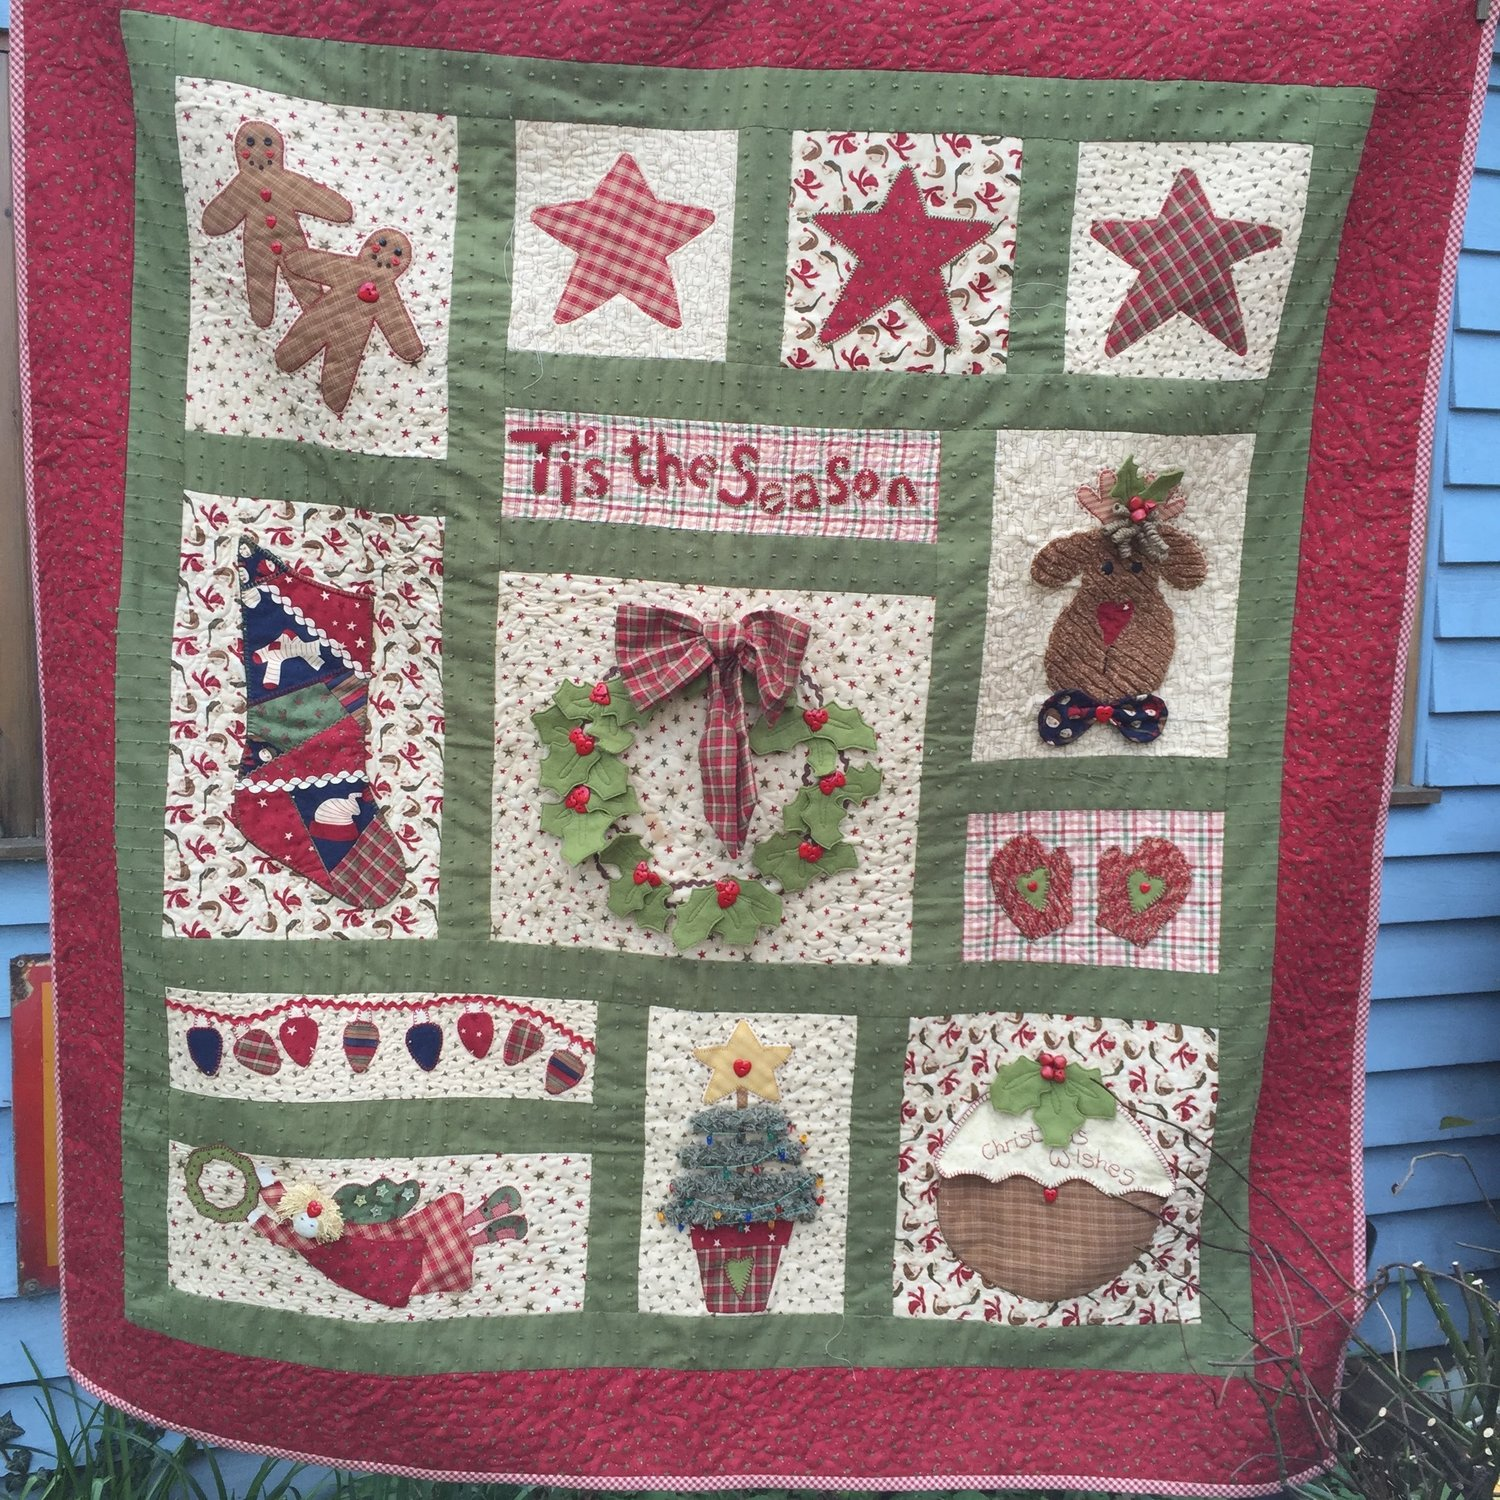 Tis the Season Quilt Pattern — Dandelion Designs : tis the season quilt book - Adamdwight.com